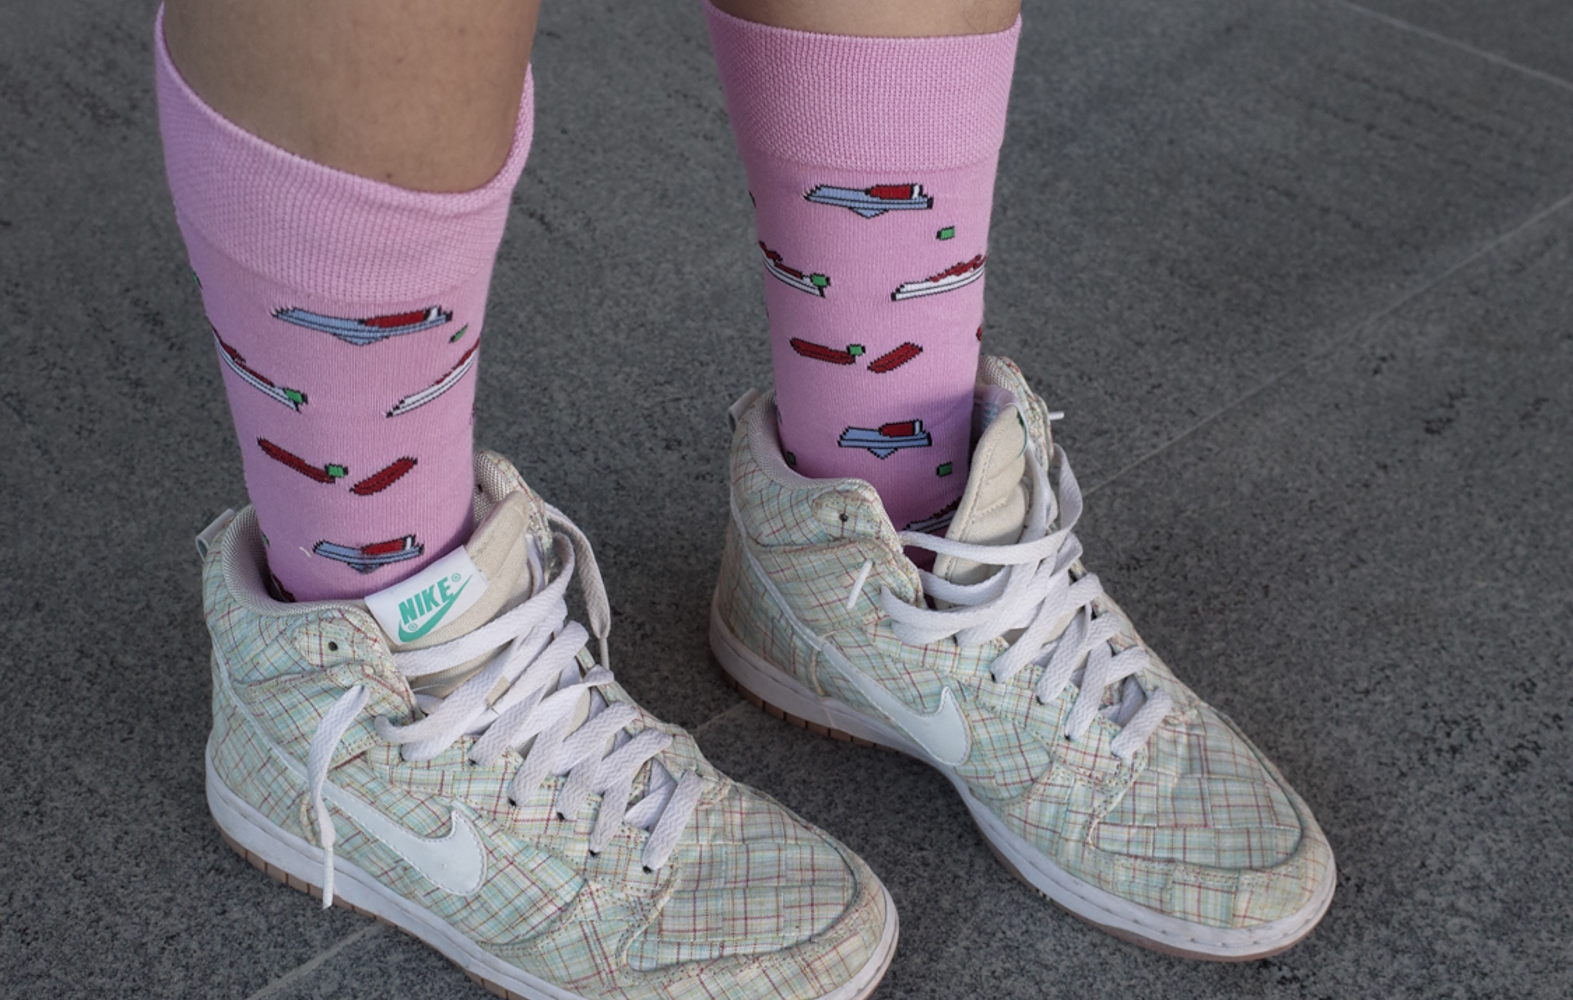 festival socks from the goodie bag